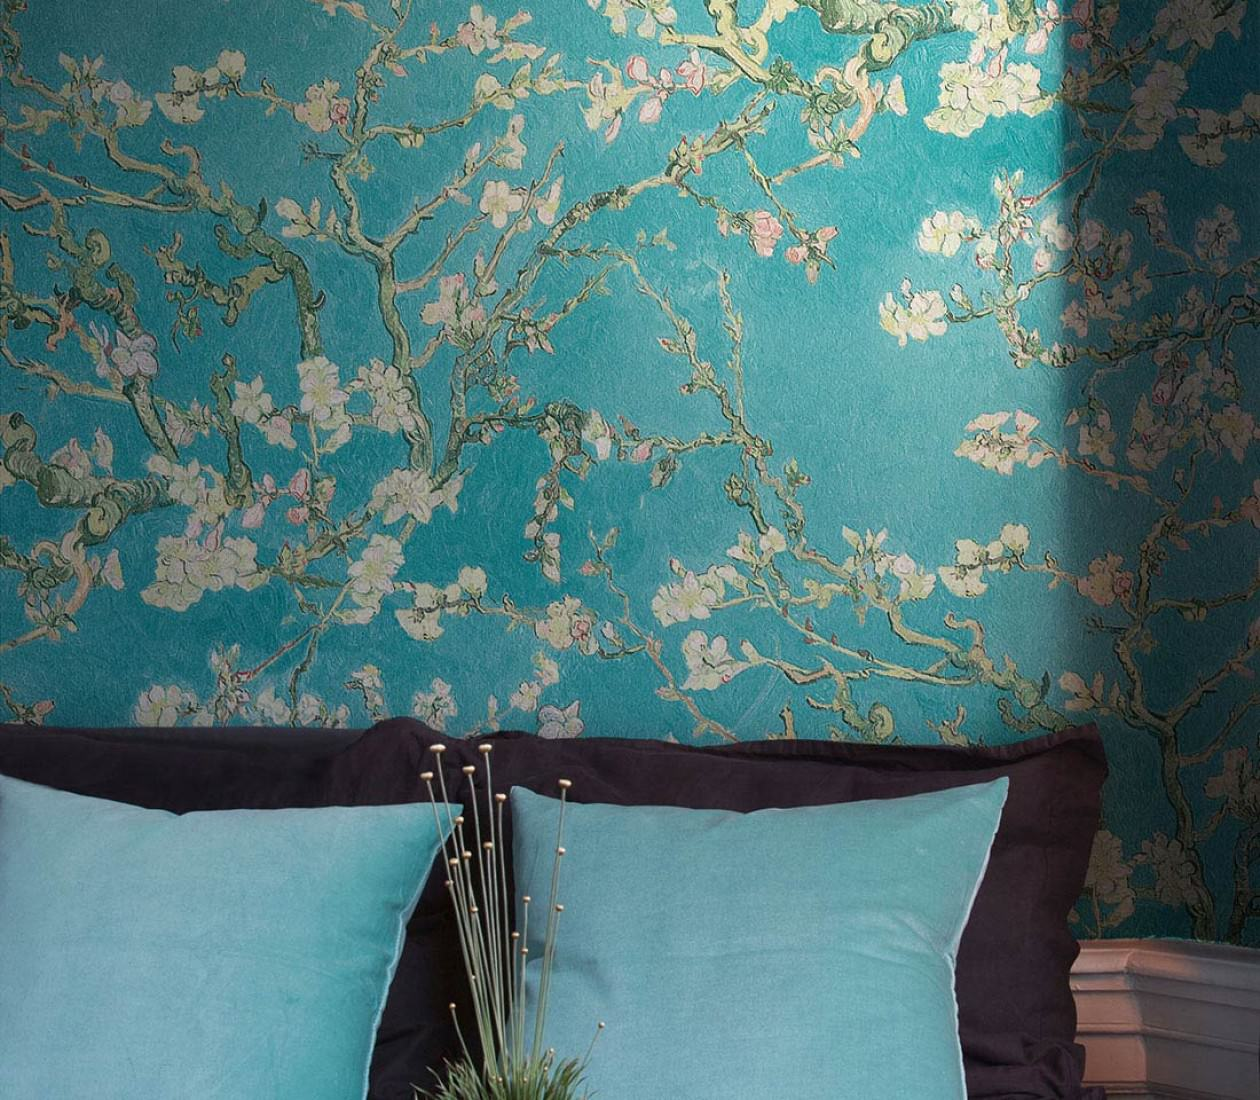 wallpaper vangogh blossom turquoise pale green brown red green beige black brown. Black Bedroom Furniture Sets. Home Design Ideas